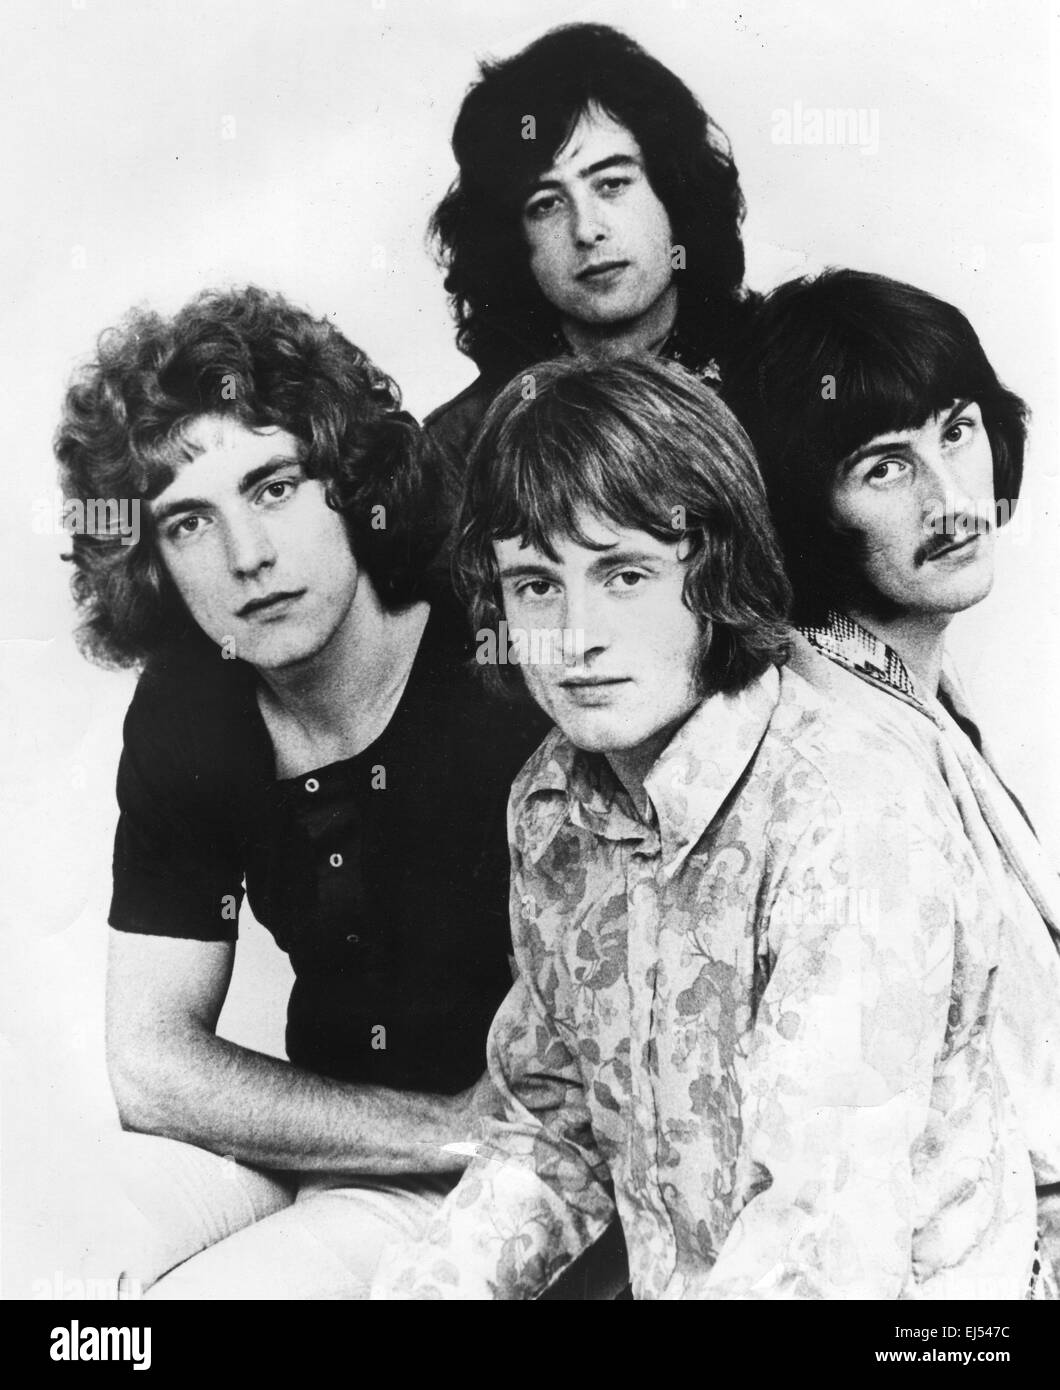 Led zeppelin promotional photo of uk rock group about 1968 stock image